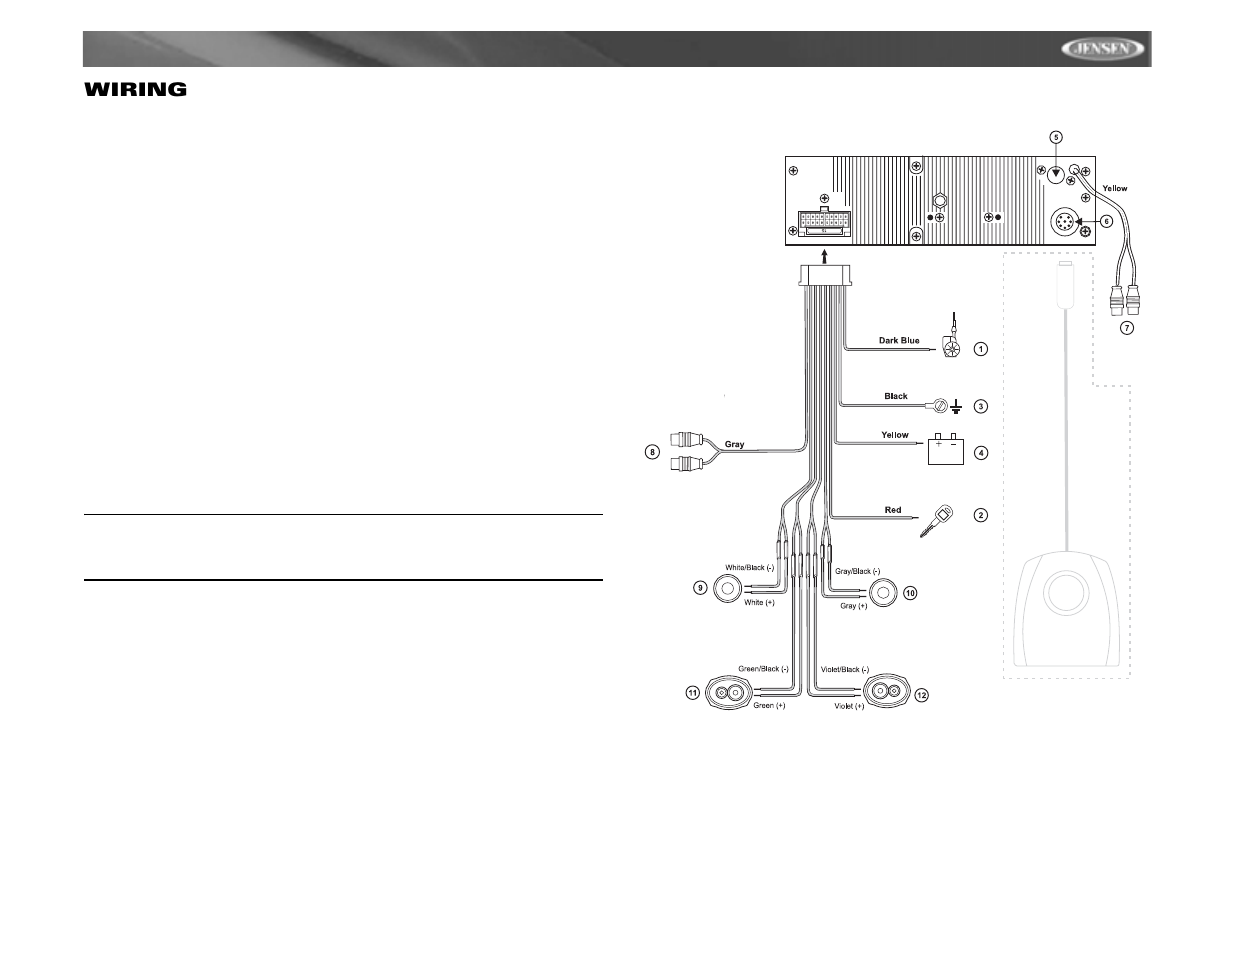 bmw car stereo wiring diagram mp6211, wiring | jensen mp6211 user manual | page 7 / 52 jensen car stereo wiring diagram #8